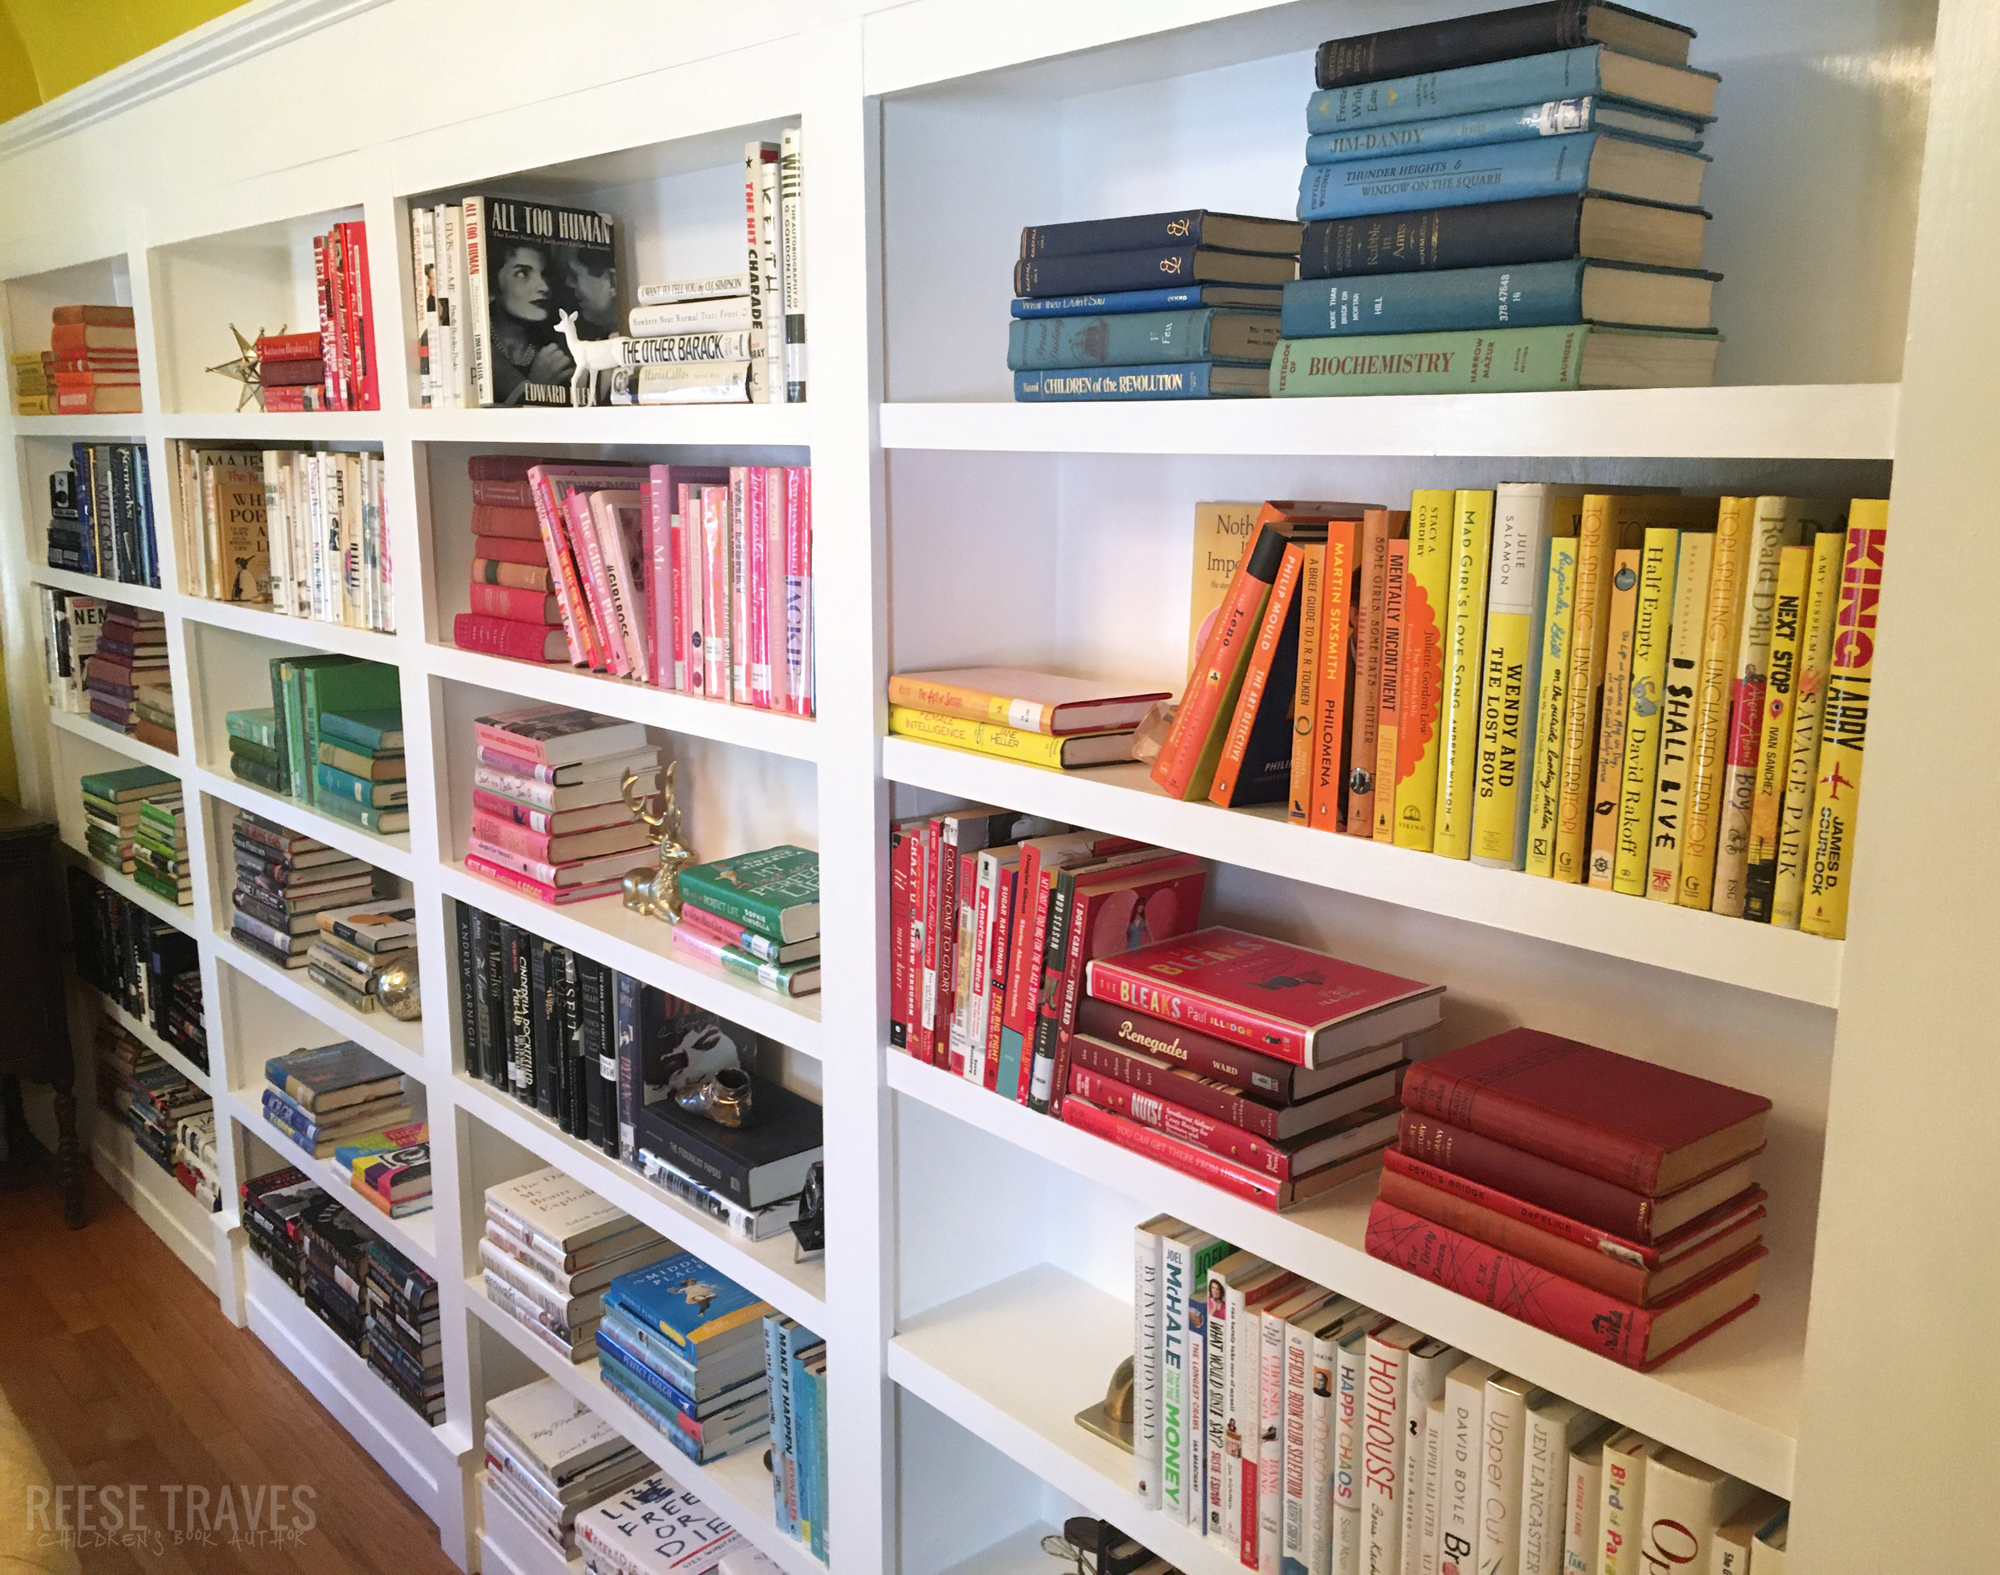 Rainbow colored book color blocked in bookshelves styling.